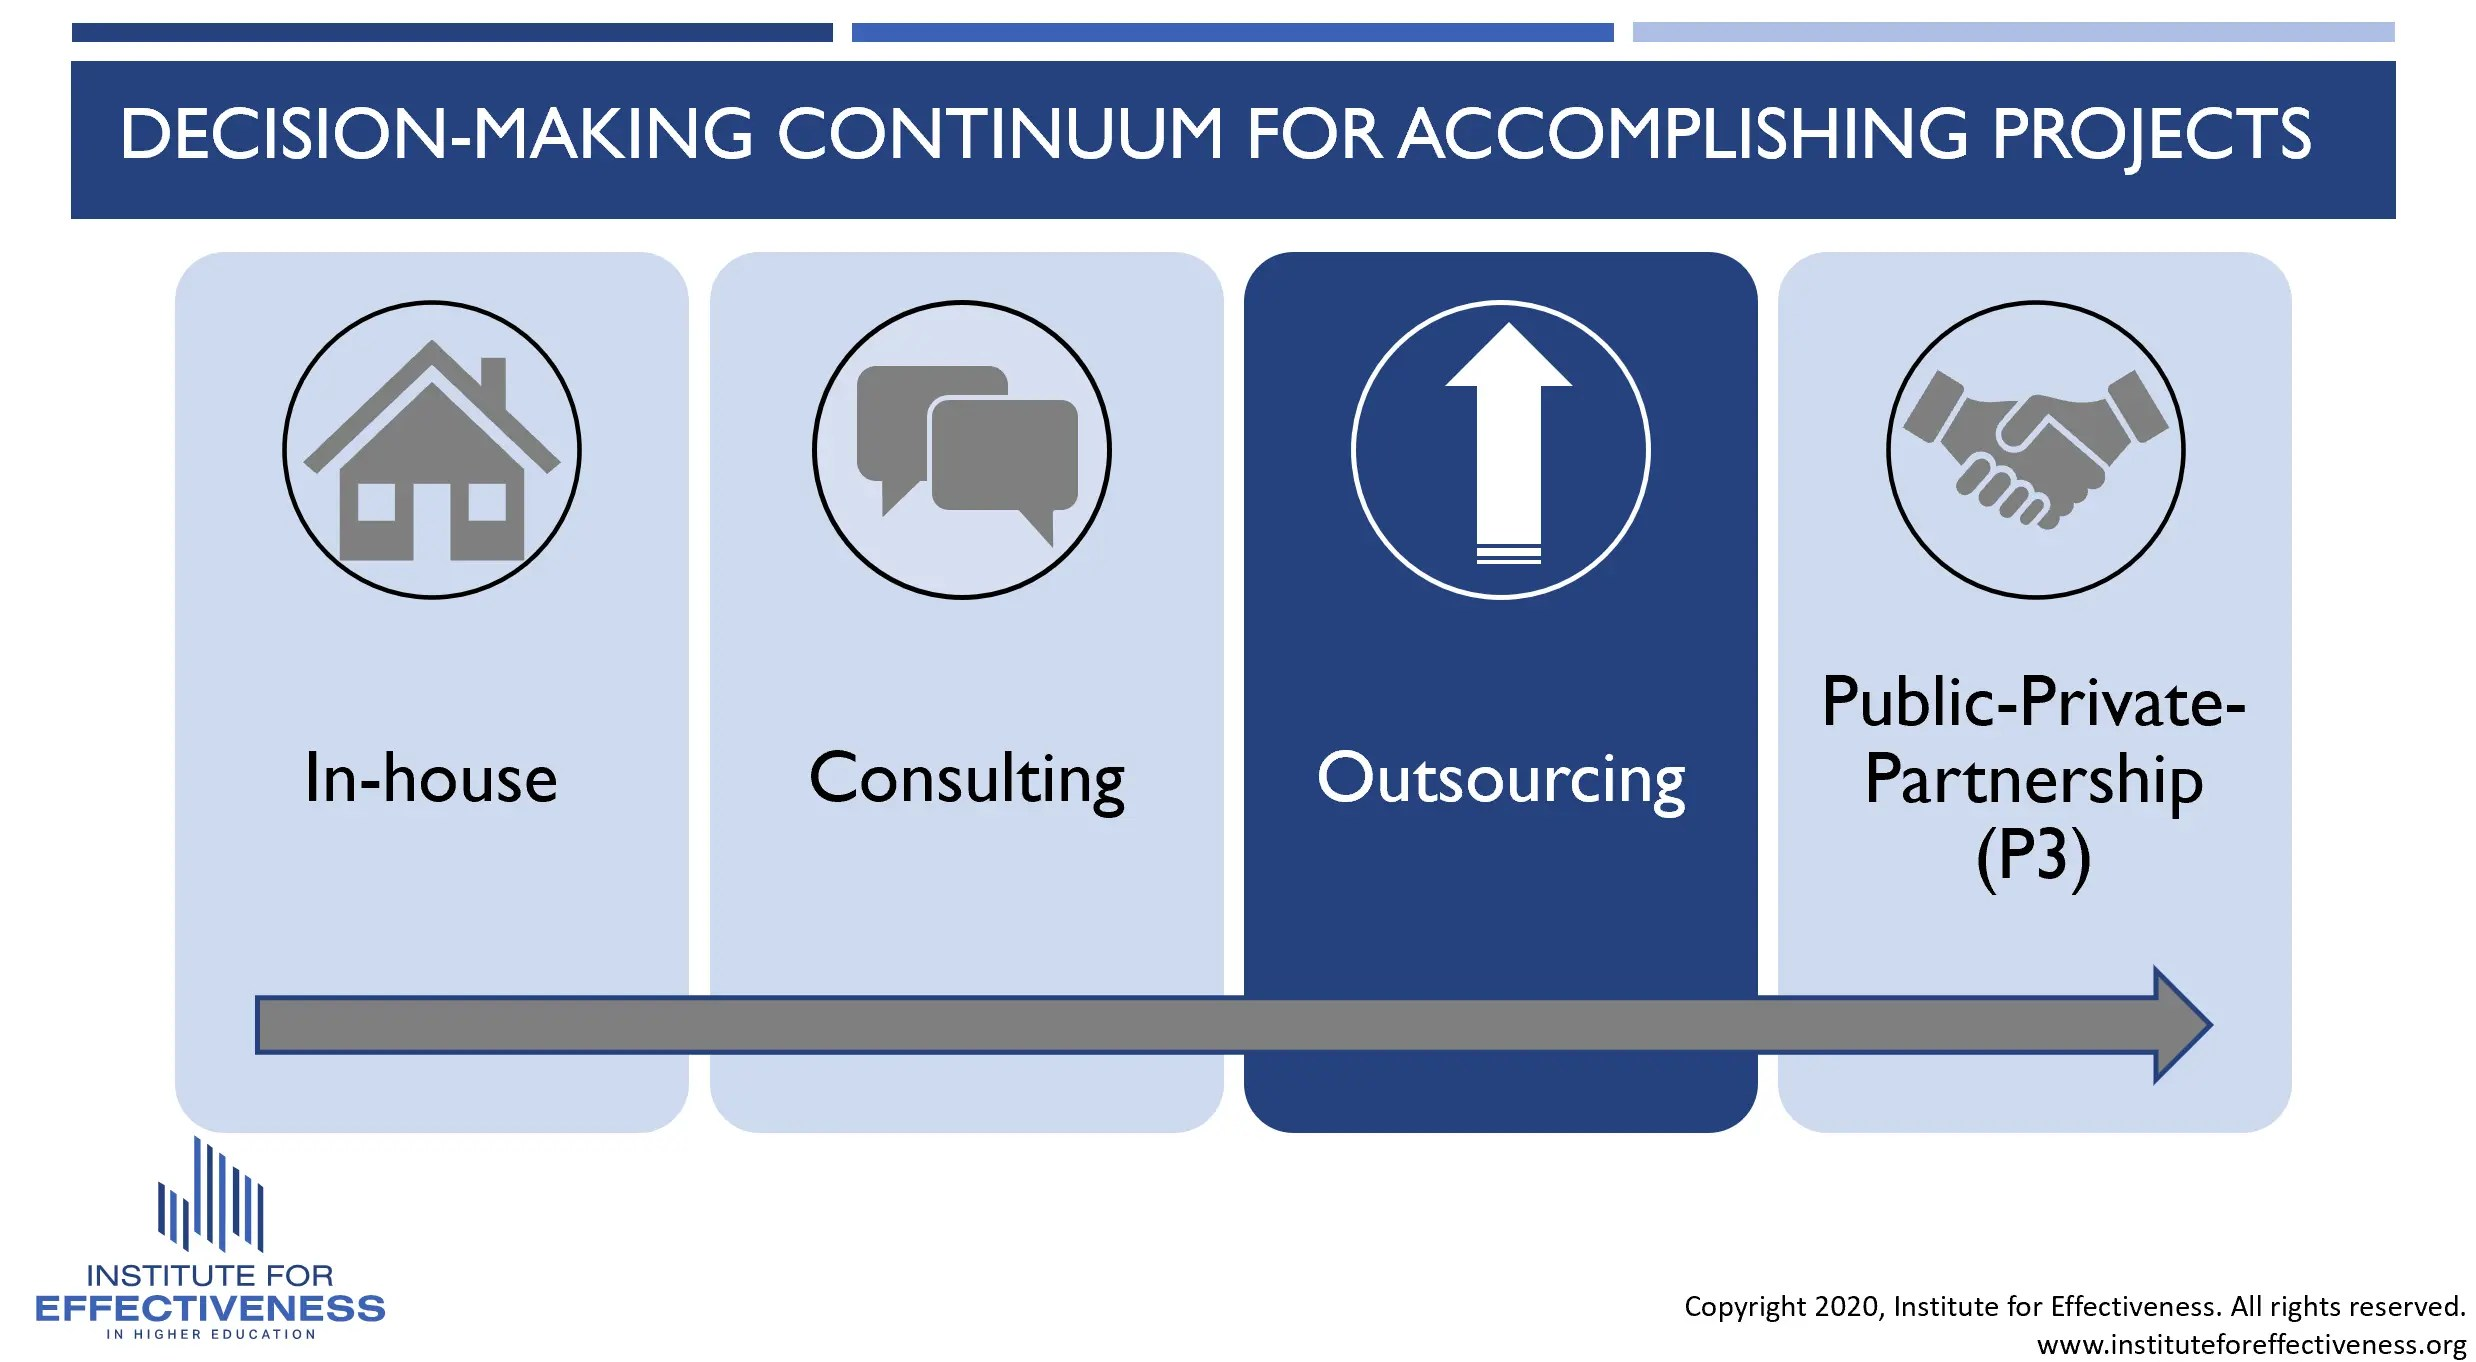 Outsourcing infographic